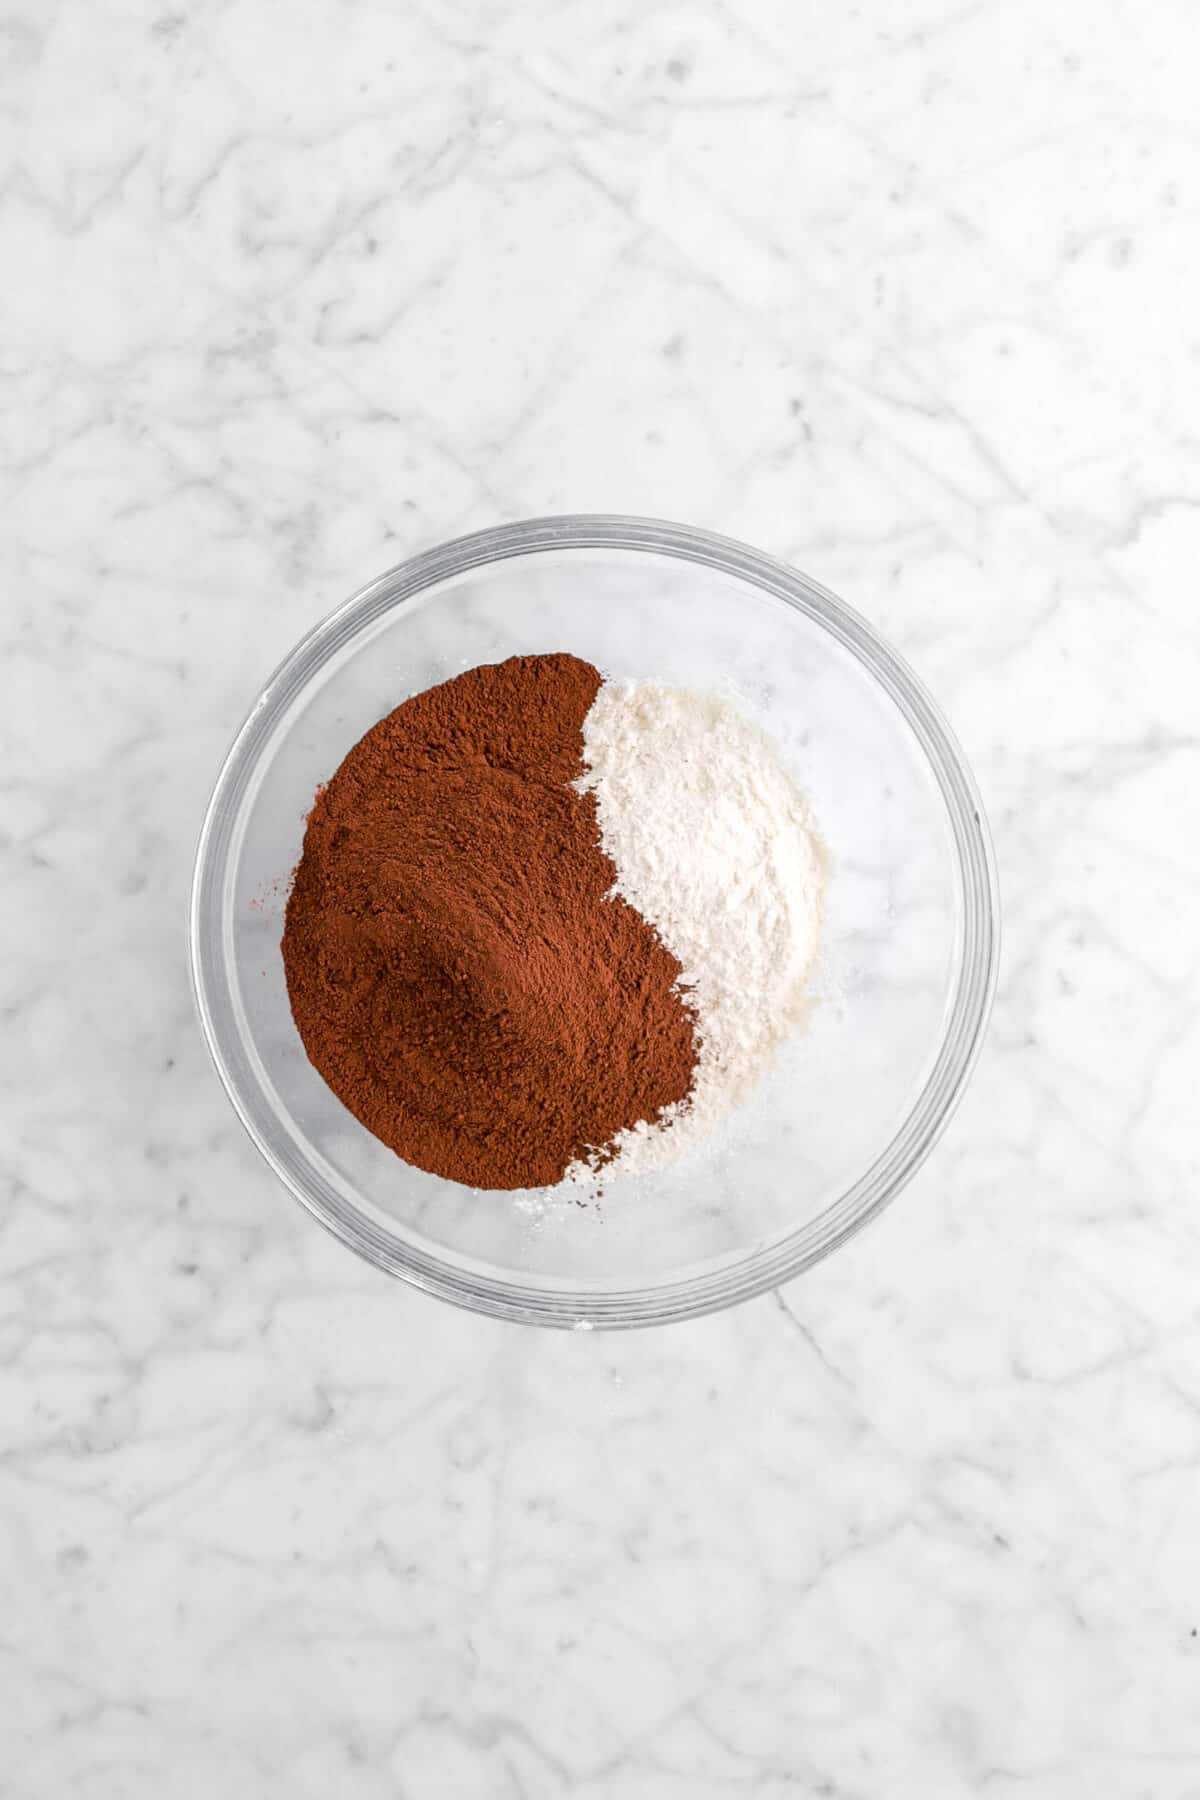 cocoa powder and flour in glass bowl